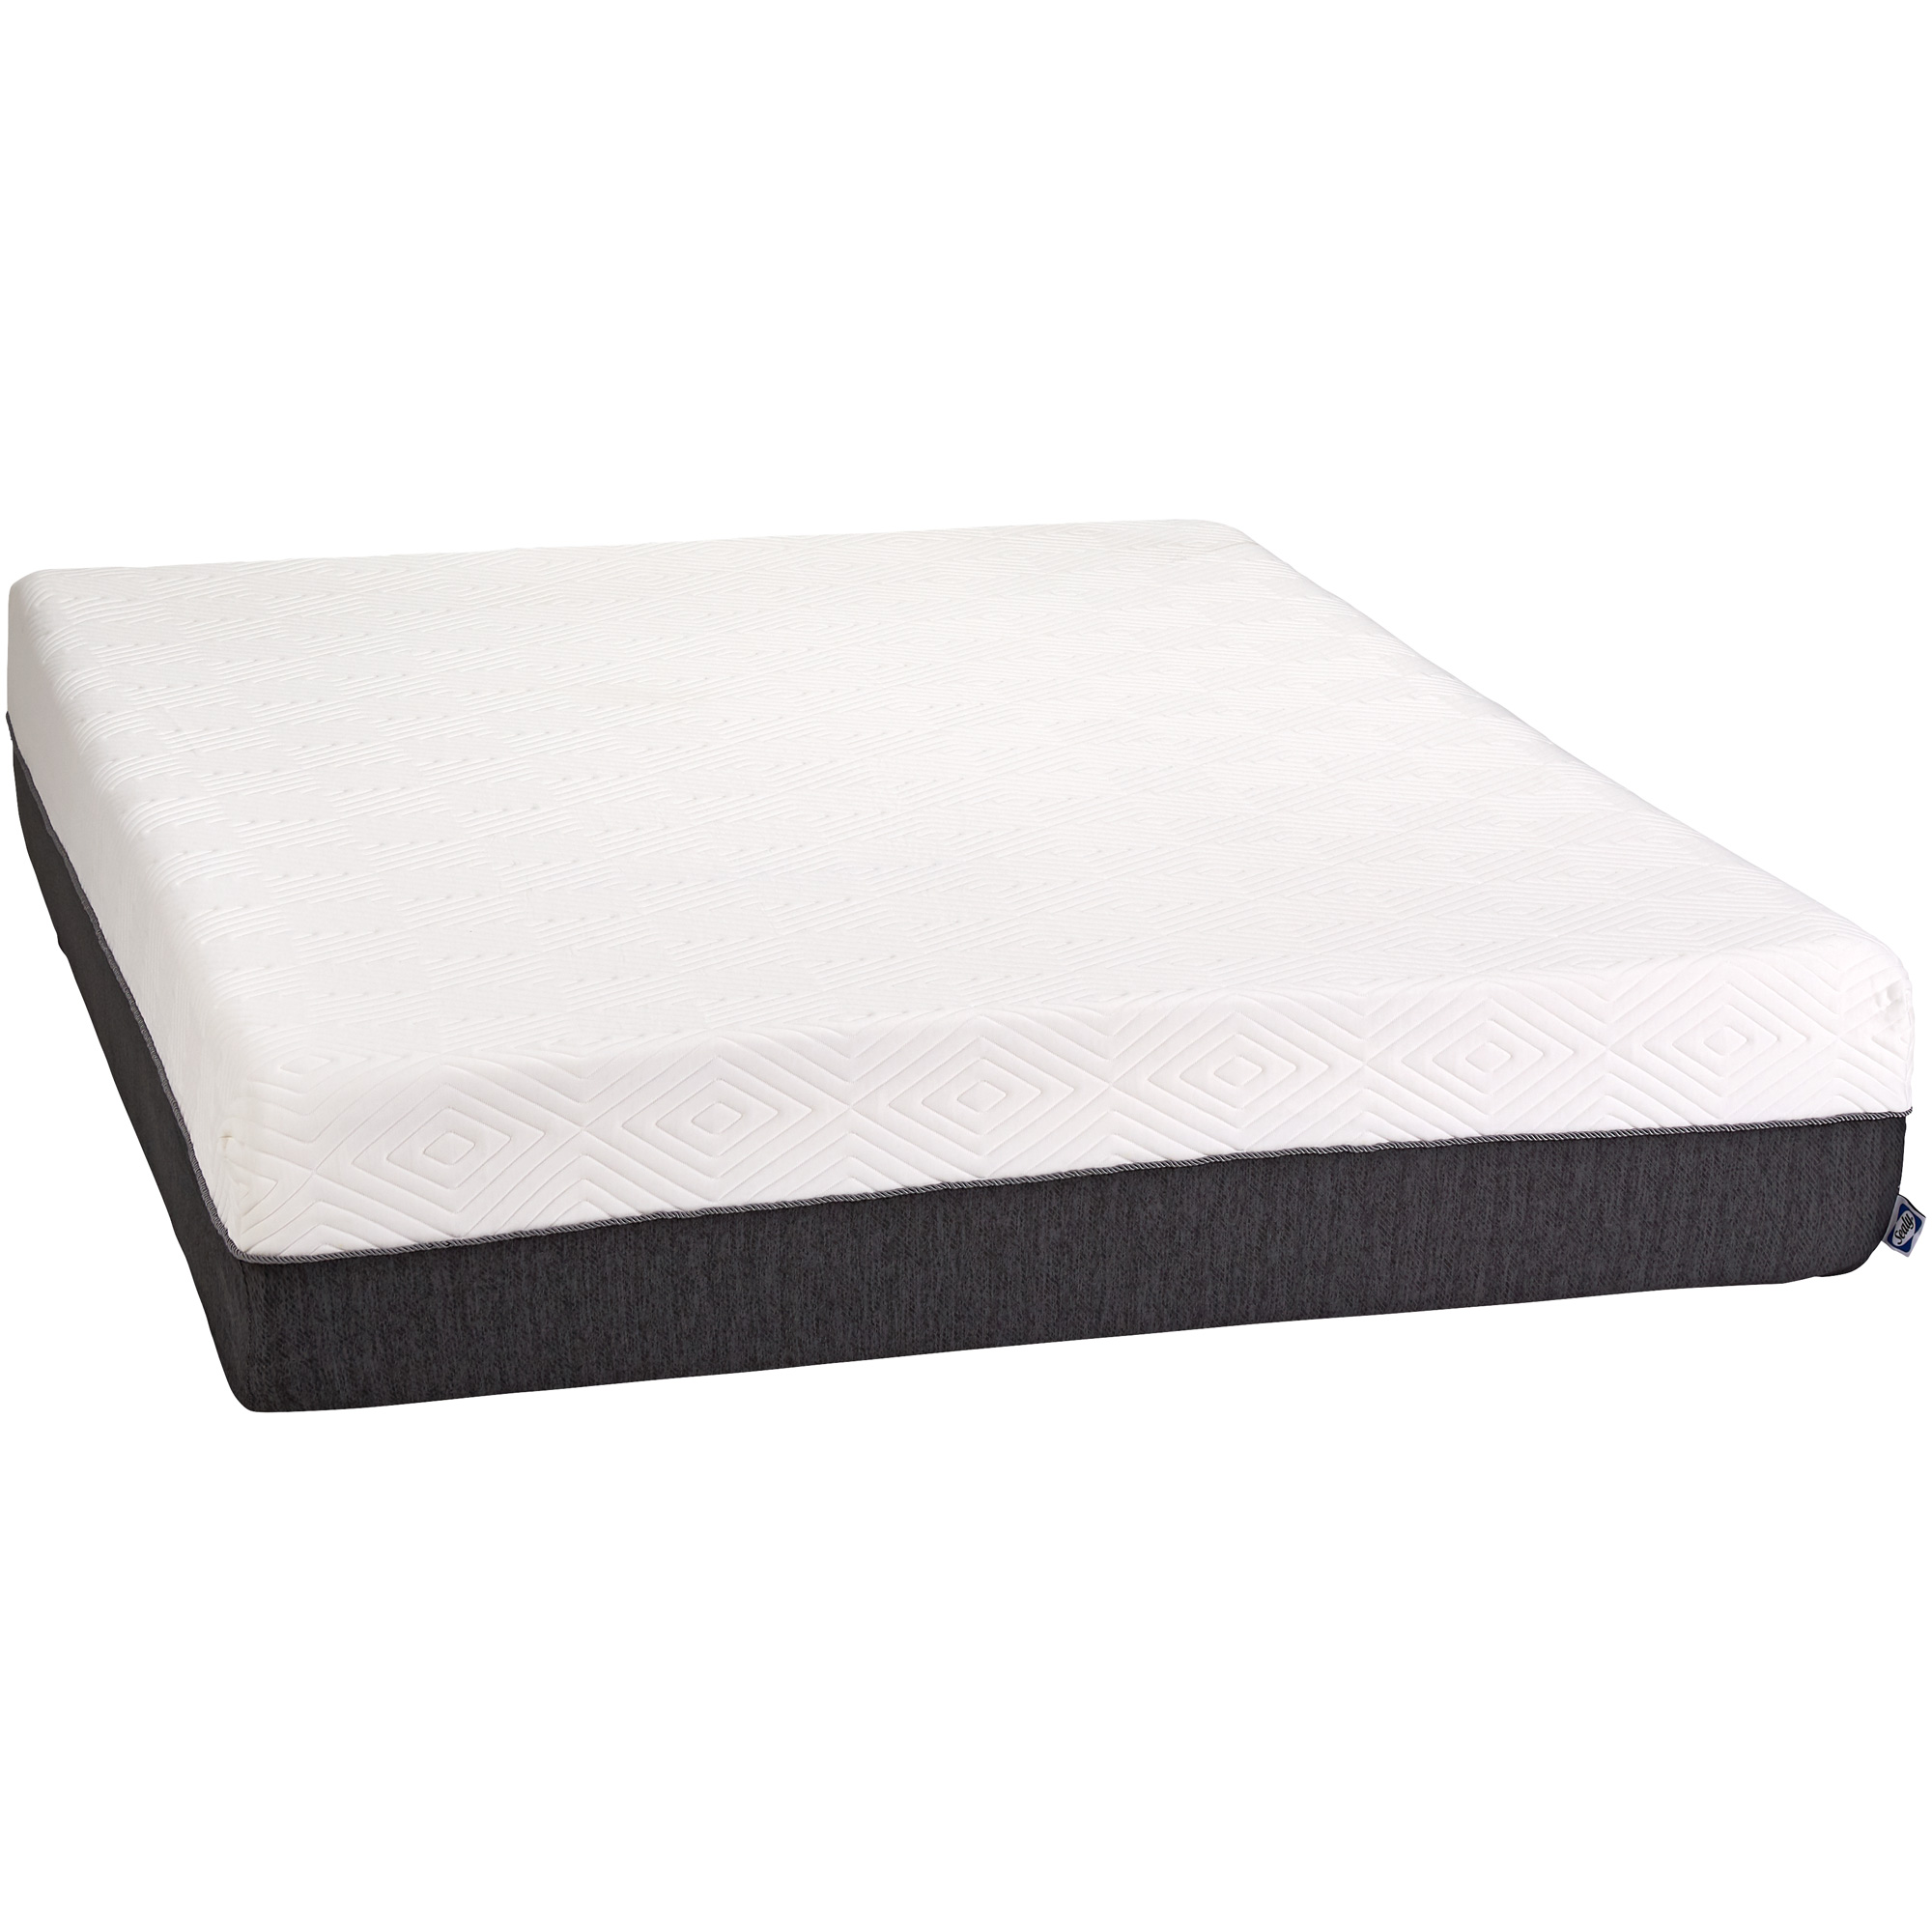 """Slumbercrest 12"""" Memory Foam King Mattress in a Box"""